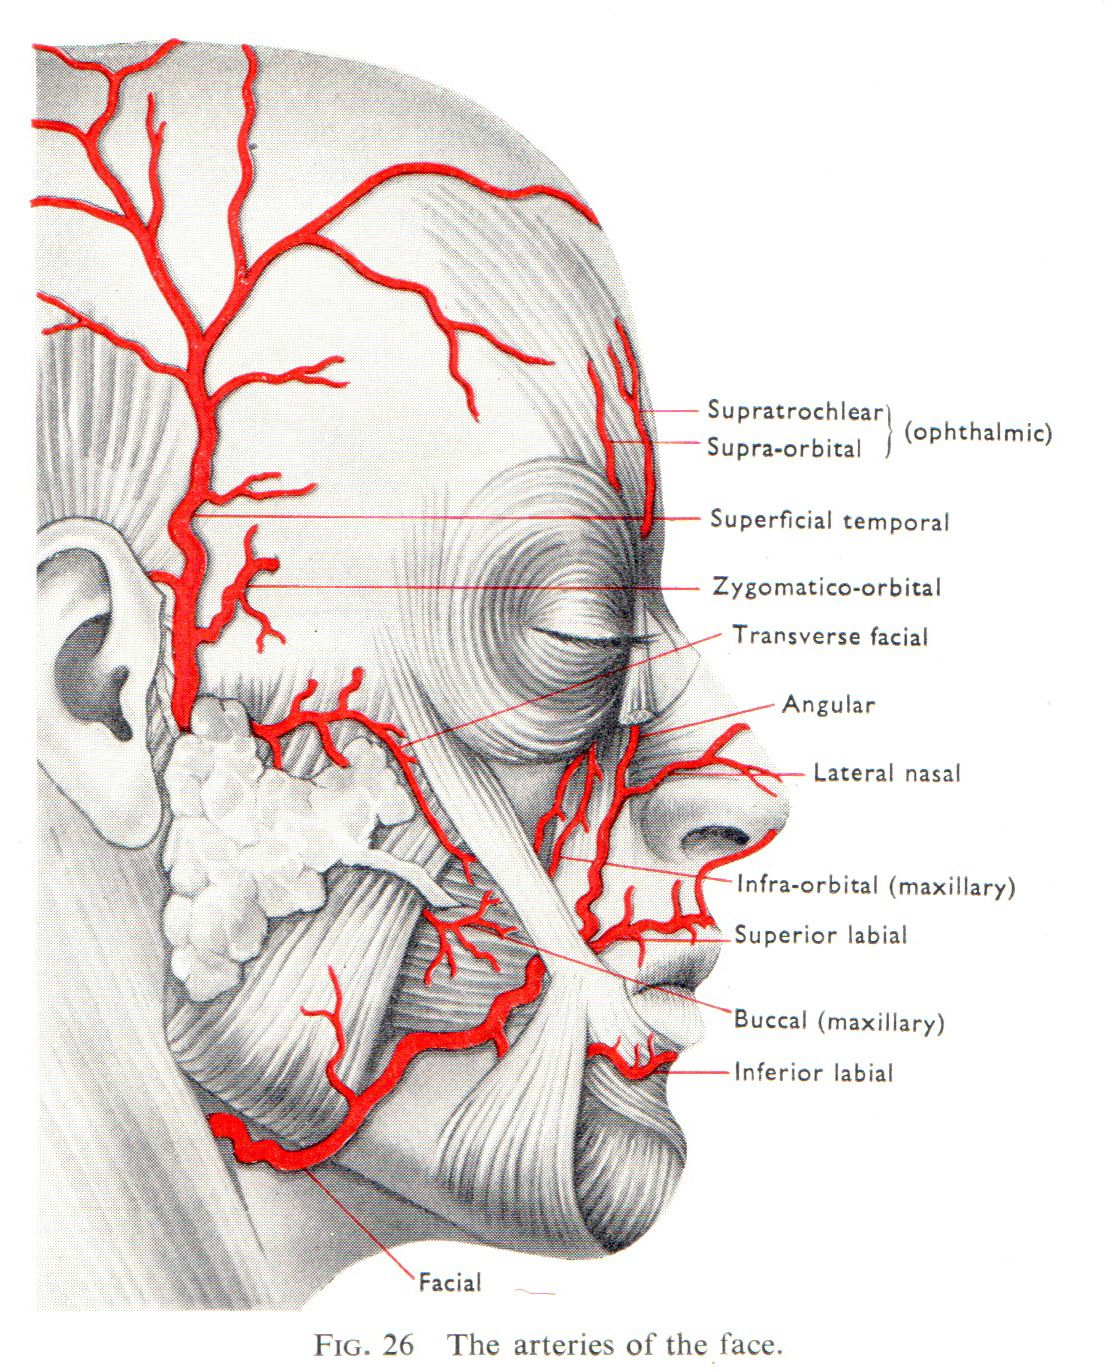 The locations of arteries of the face.